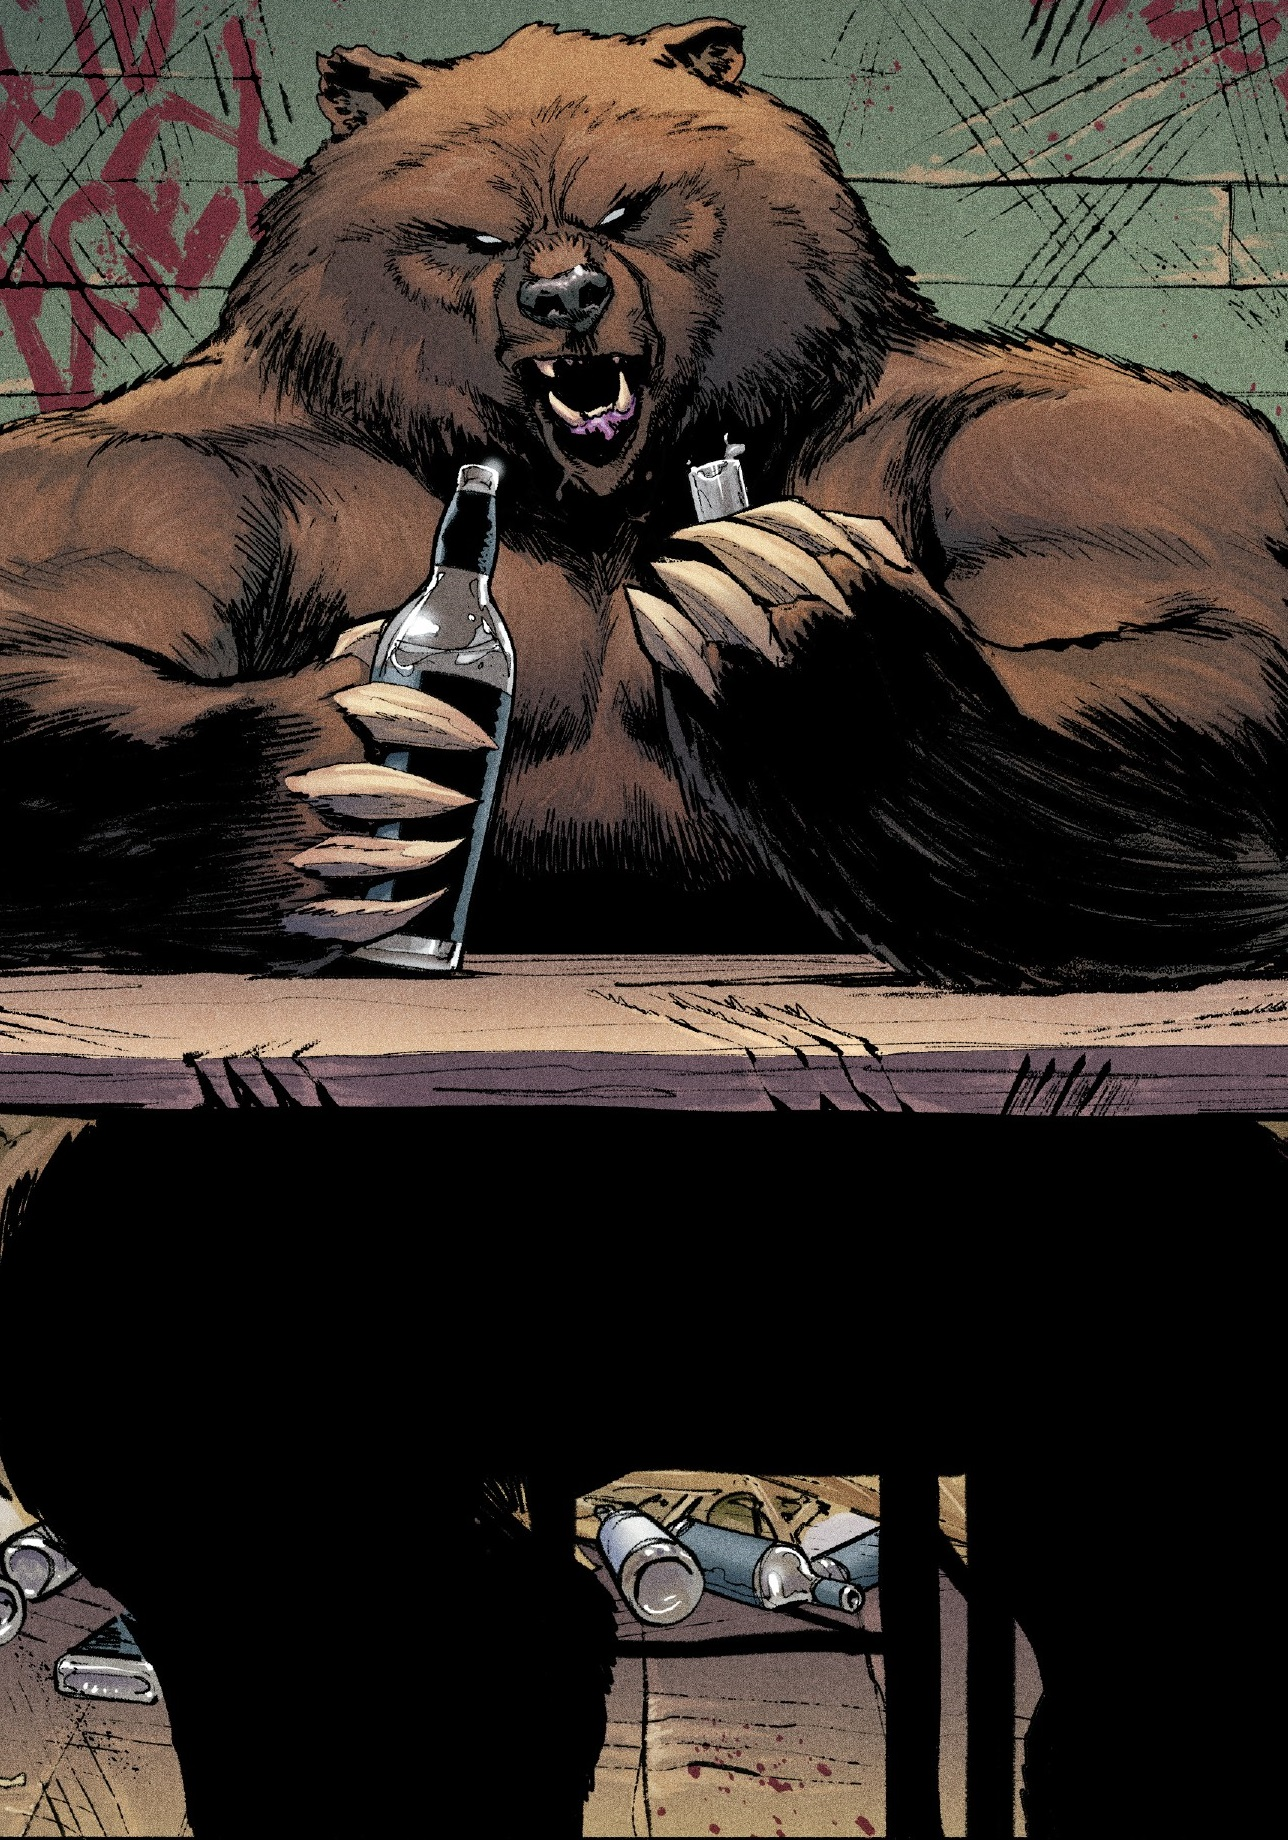 Mikhail Ursus (Earth-616) | Marvel Database | FANDOM powered by Wikia